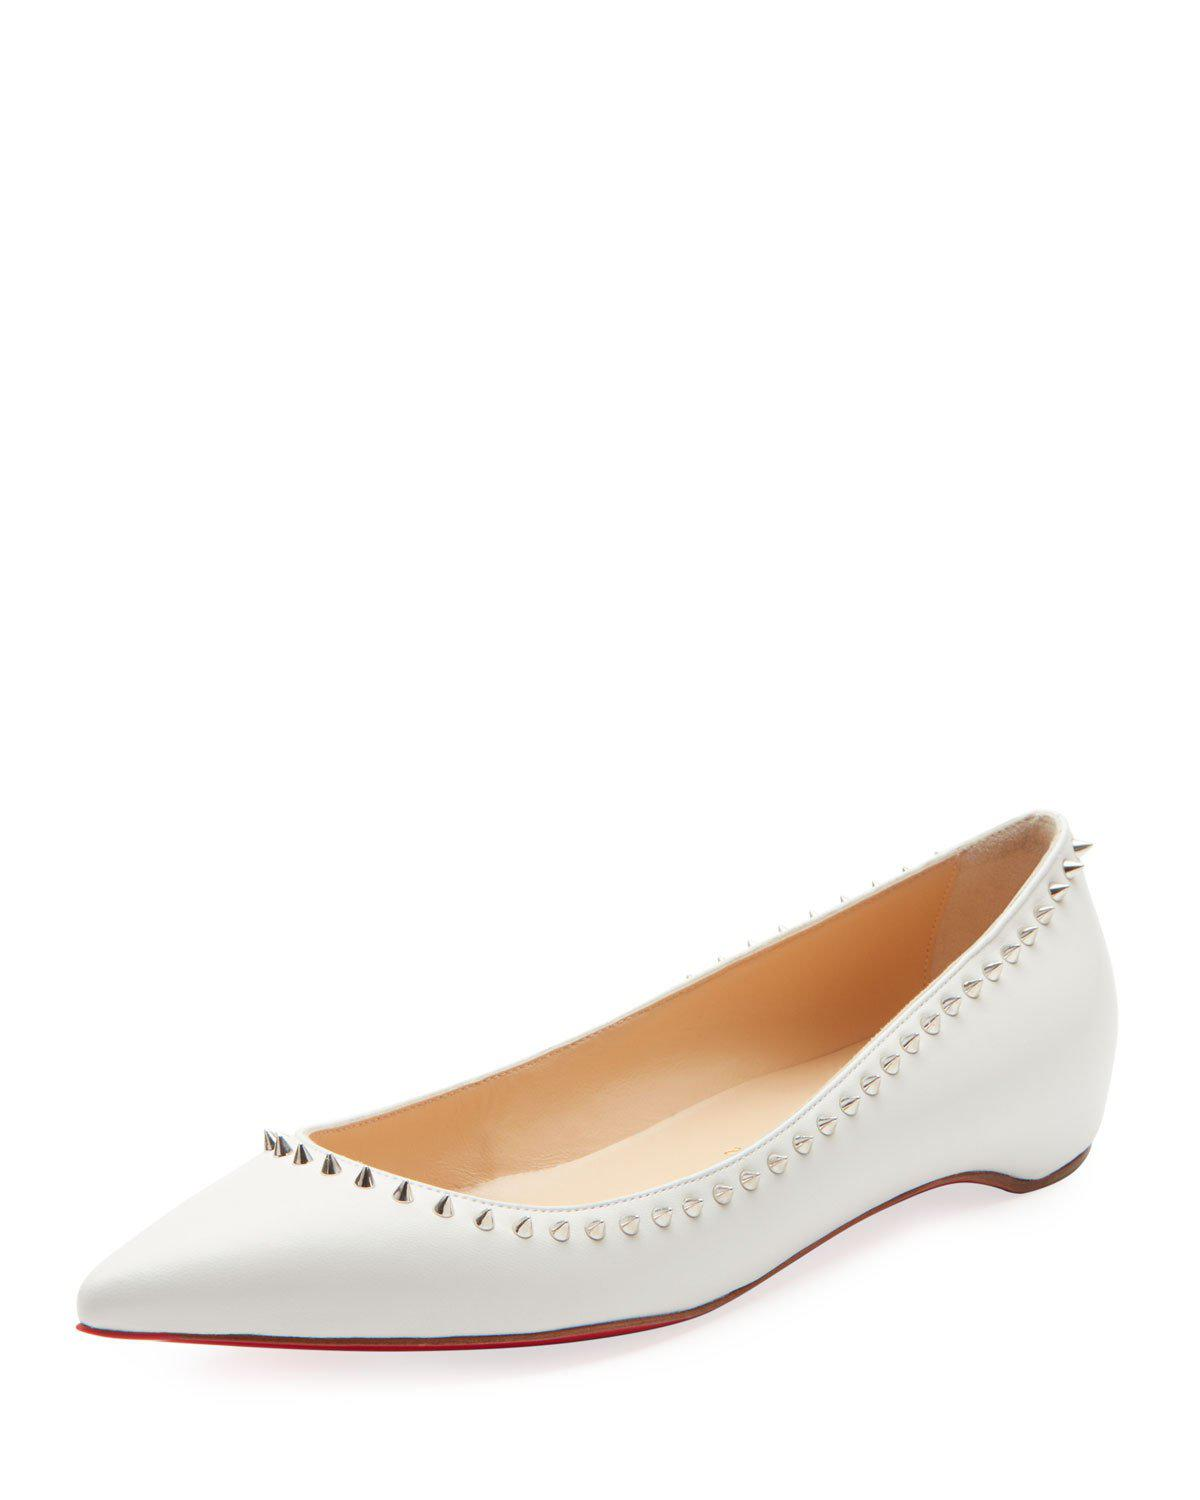 49ac1921147c Christian Louboutin Anjalina Studded Red Sole Ballet Flats In Snow White   Silver